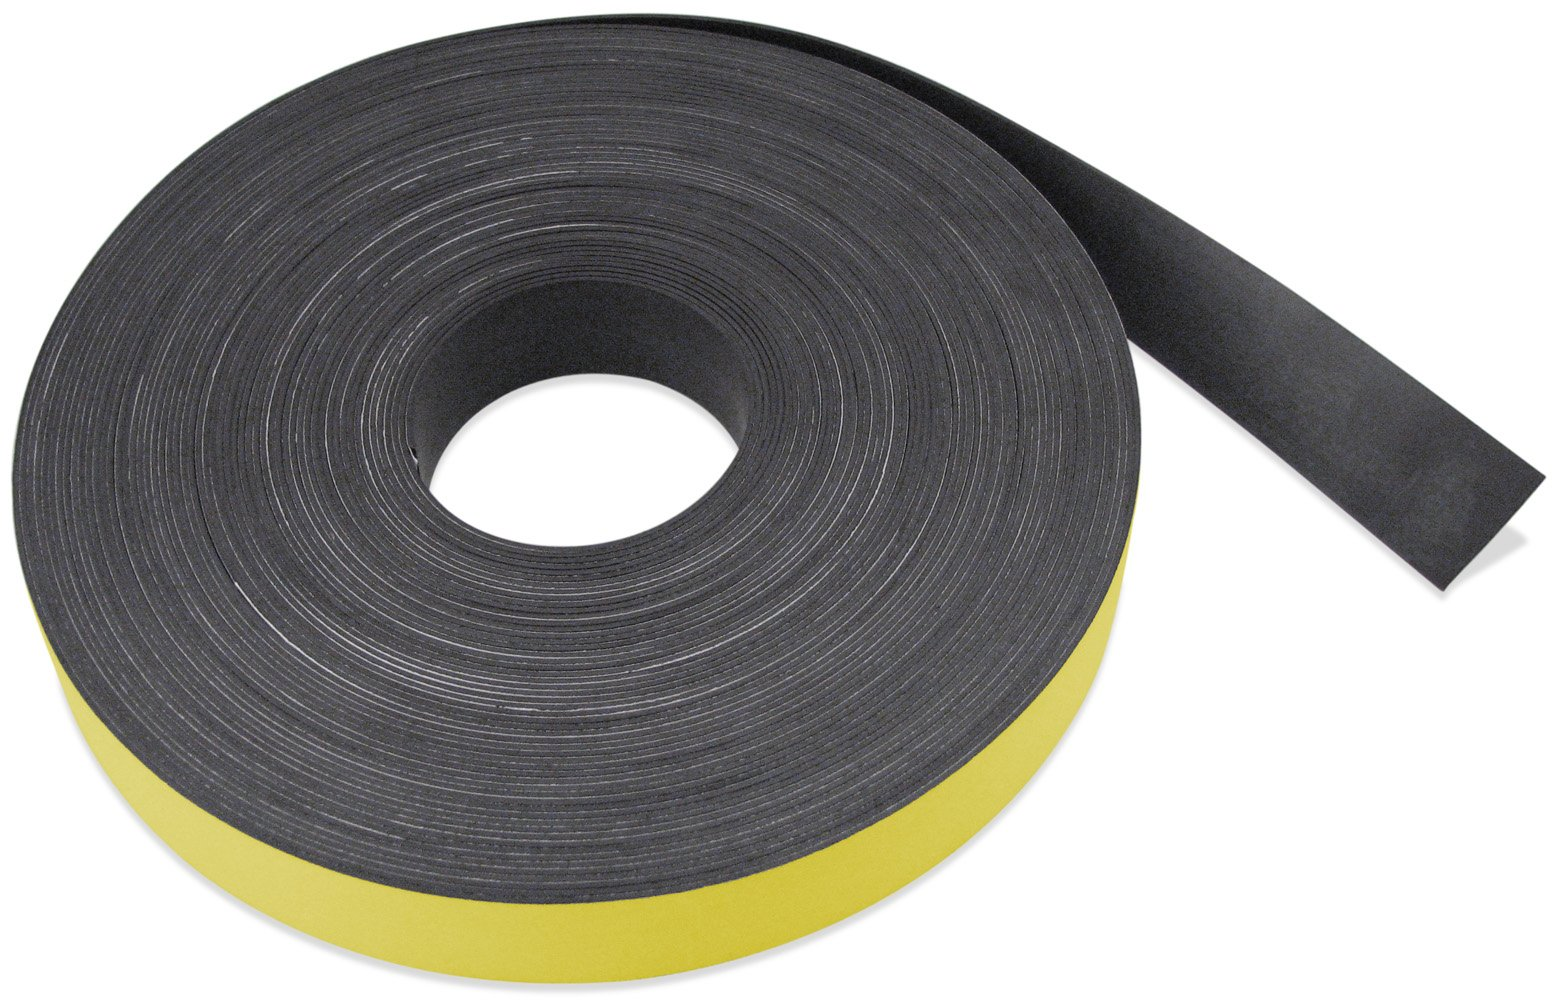 Flexible Magnet Strip with Yellow Vinyl Coating, 1/32'' Thick, 3'' Height, 50 Feet, 1 Roll